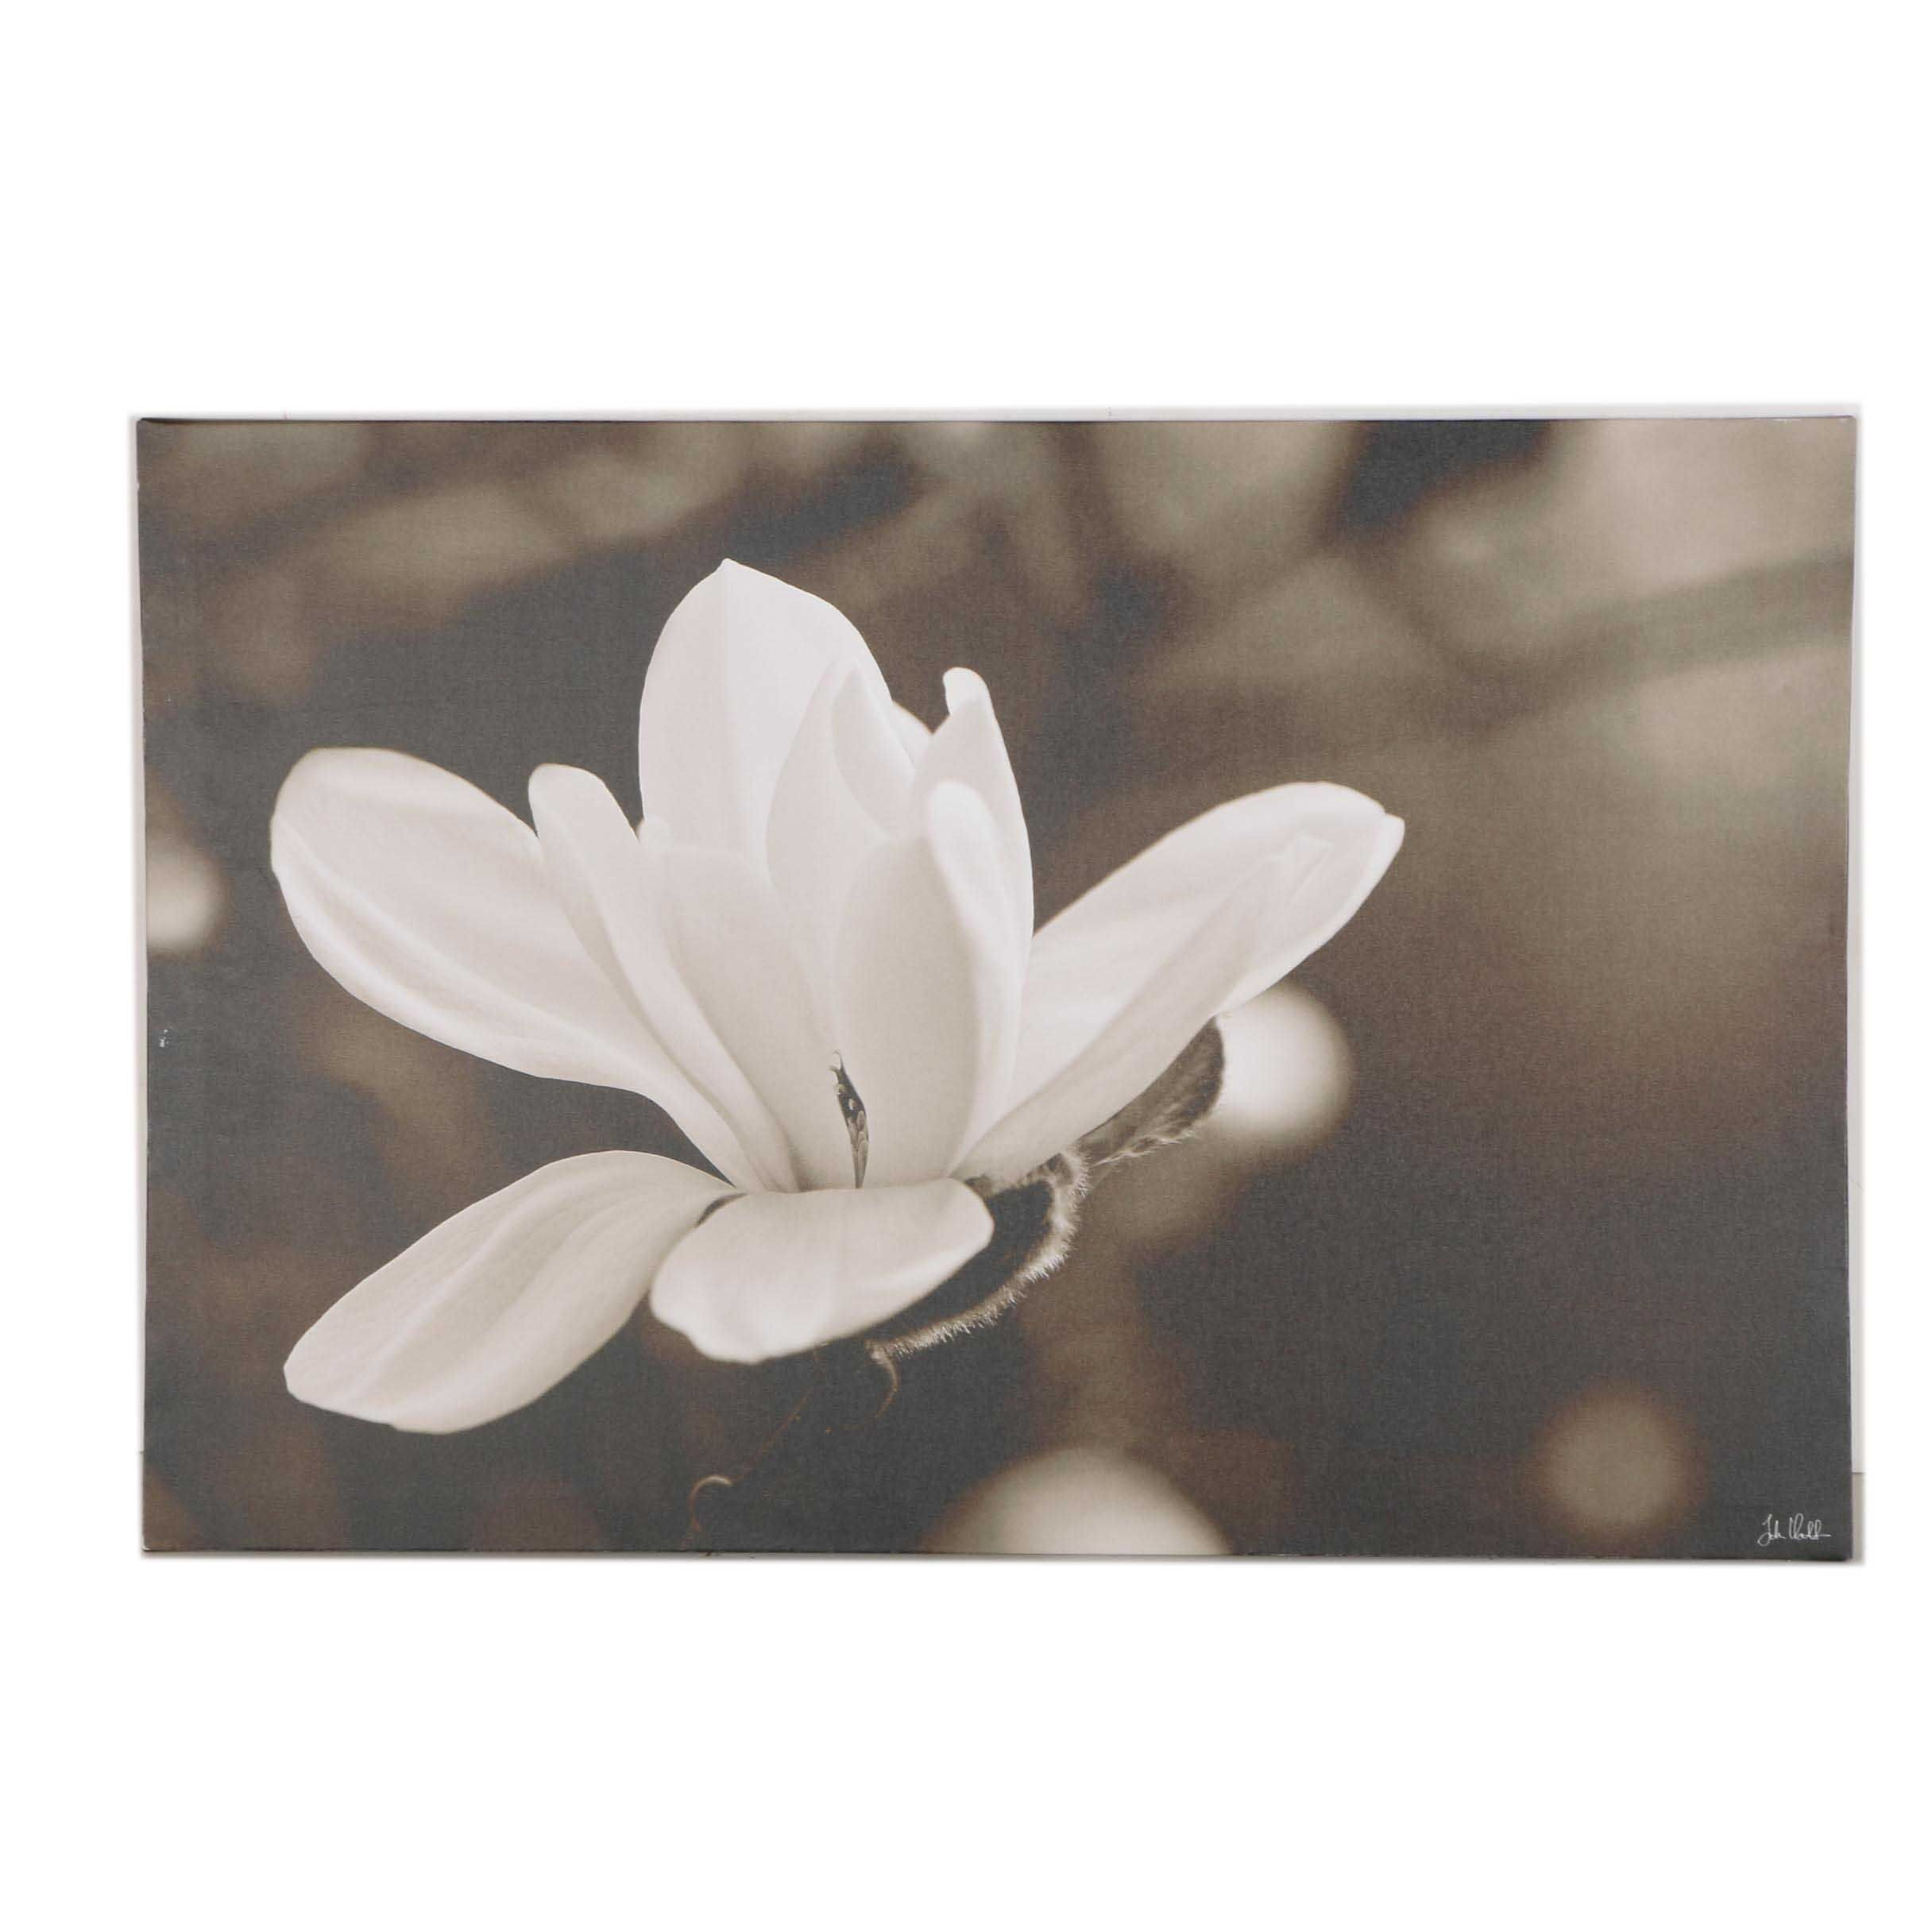 Giclee on Canvas of Magnolia Blossom